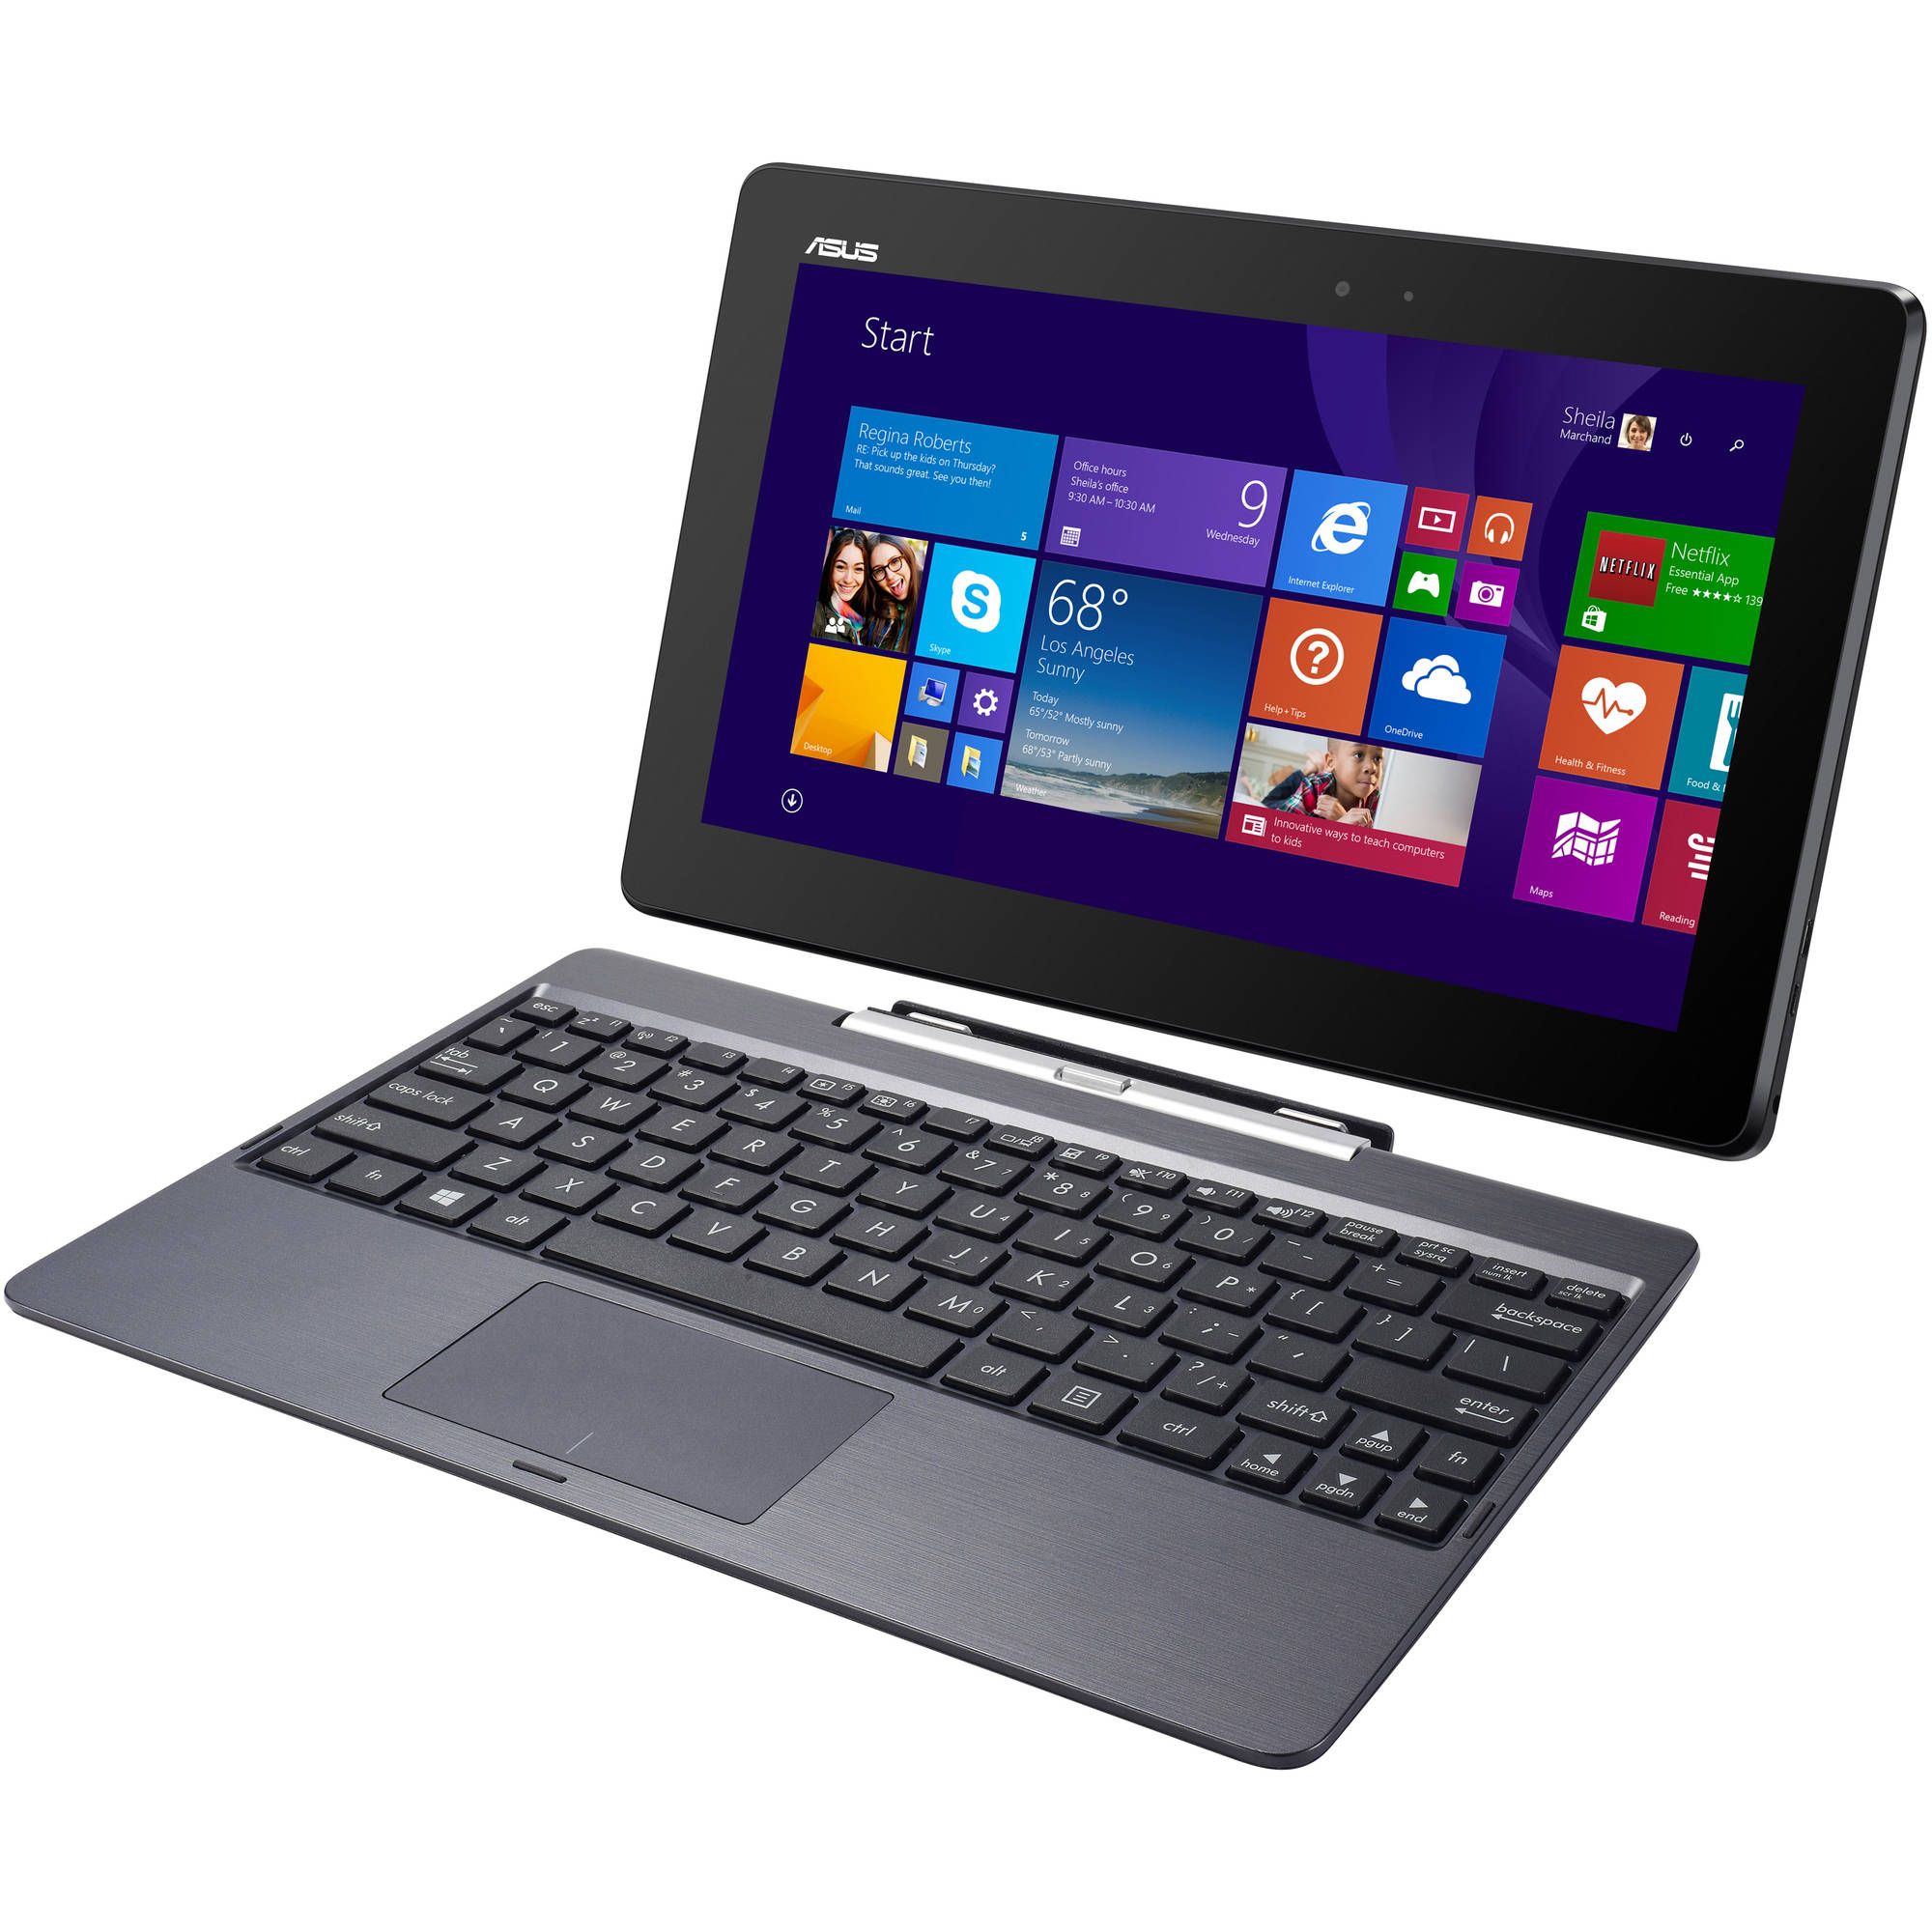 """ASUS Gray 10.1"""" Transformer Book T100TA-C1-GR-B Netbook Laptop PC with Intel Atom Z3740 Processor, 2GB Memory, Touchscreen, 64GB Solid State Drive and Windows 8.1 with Bing"""